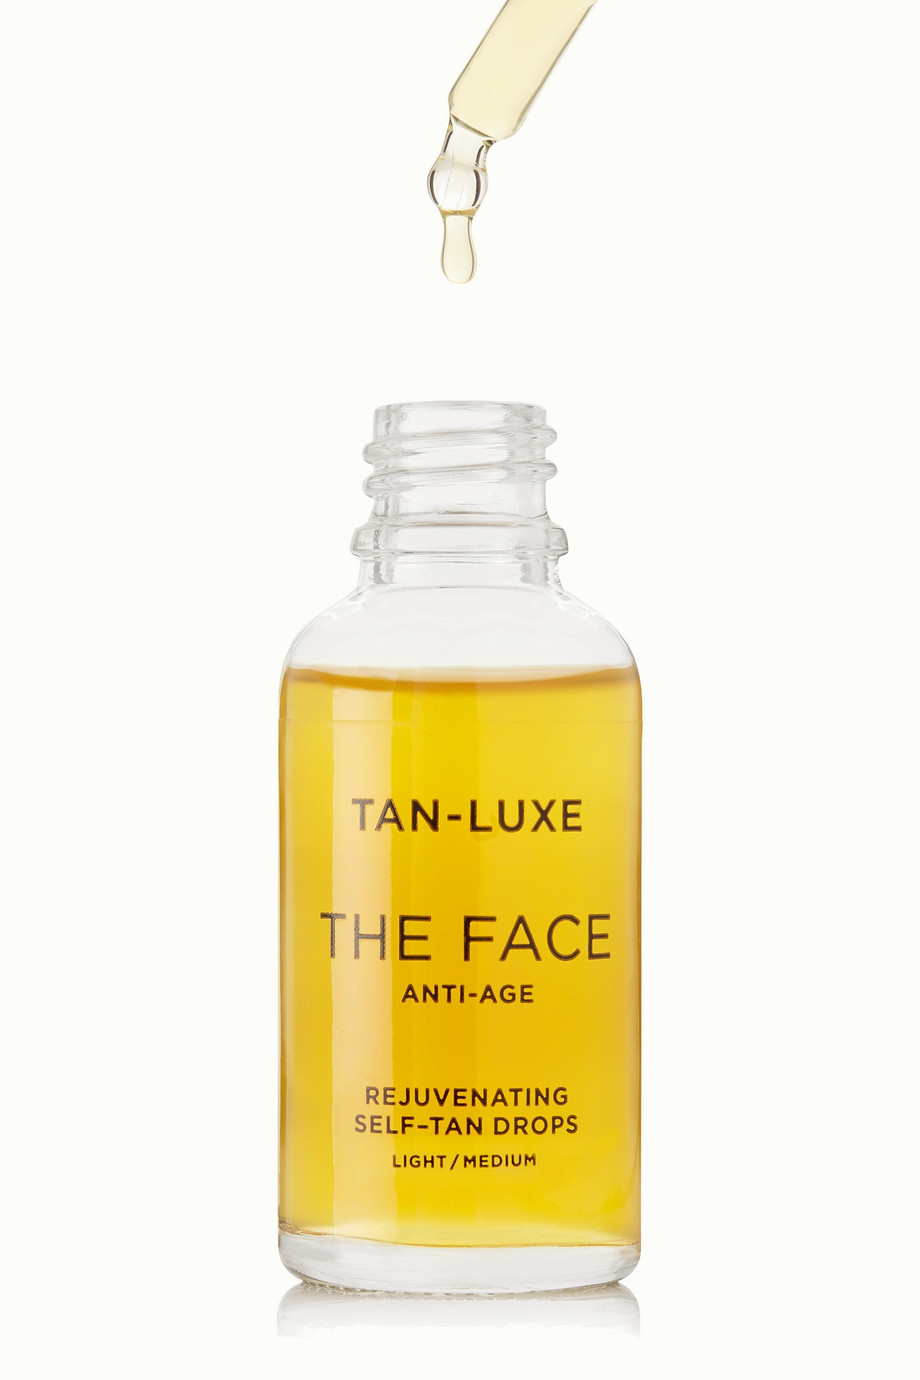 TAN-LUXE The Face Anti-Age Rejuvenating Self-Tan Drops - Light/Medium, 30ml